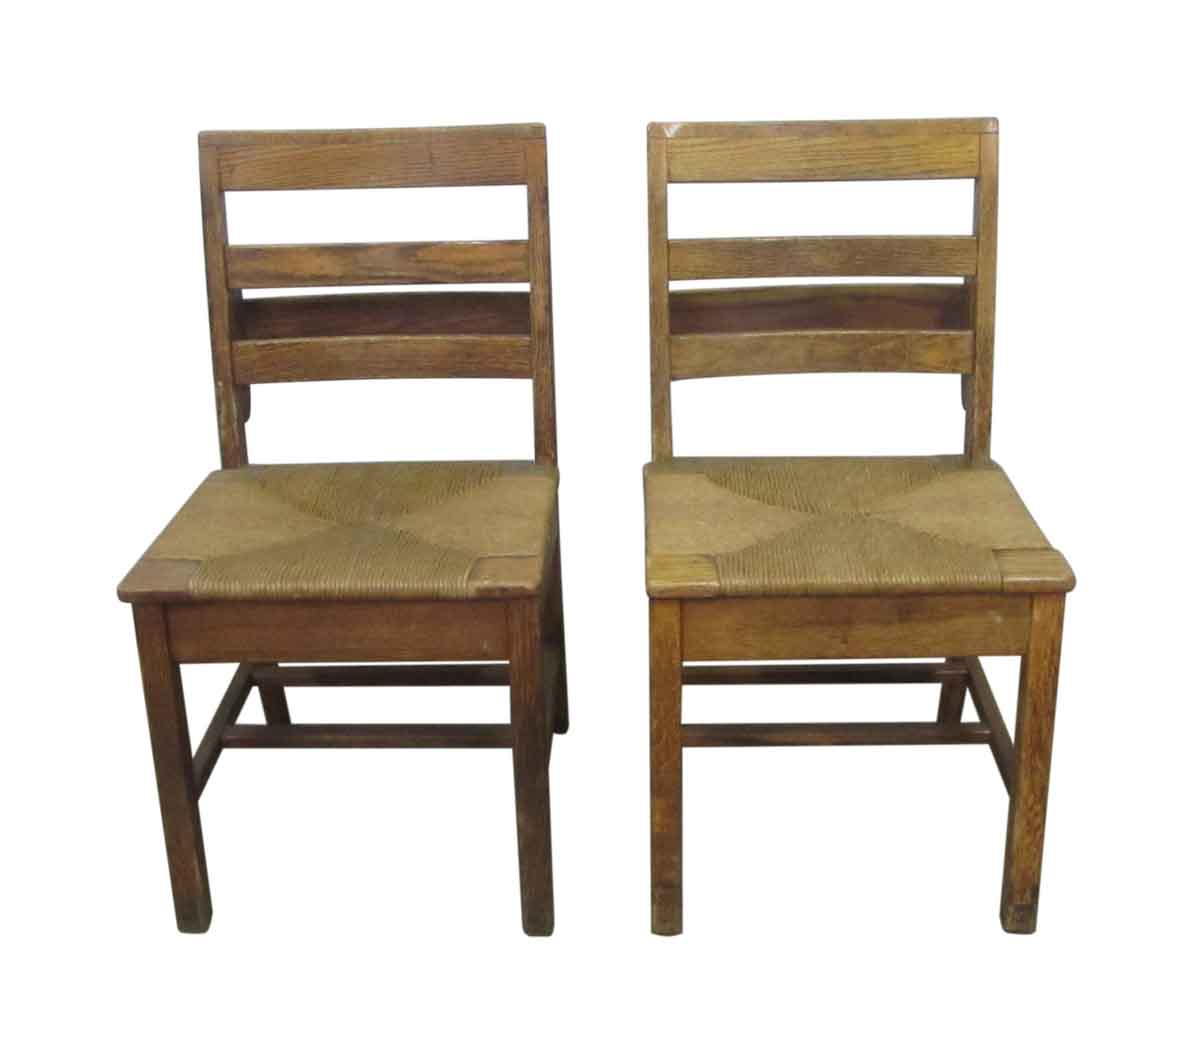 Antique School Chairs with Woven Seats - Antique School Chairs With Woven Seats Olde Good Things